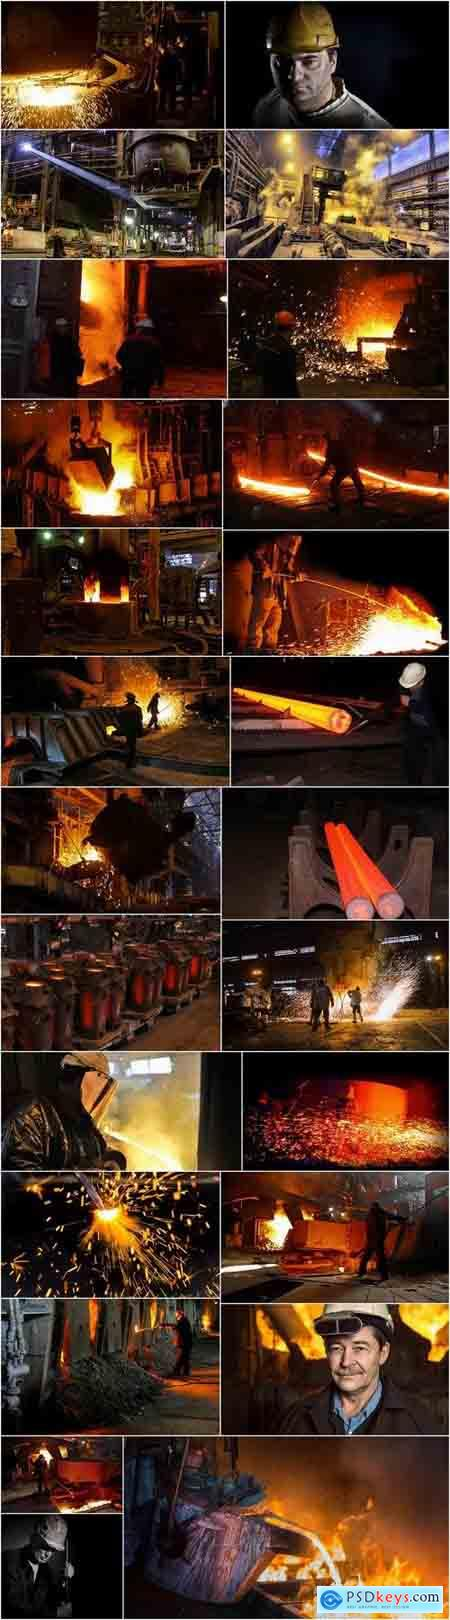 Steelmaker metallurgical blast furnace melting metal factory factory worker 25 HQ Jpeg